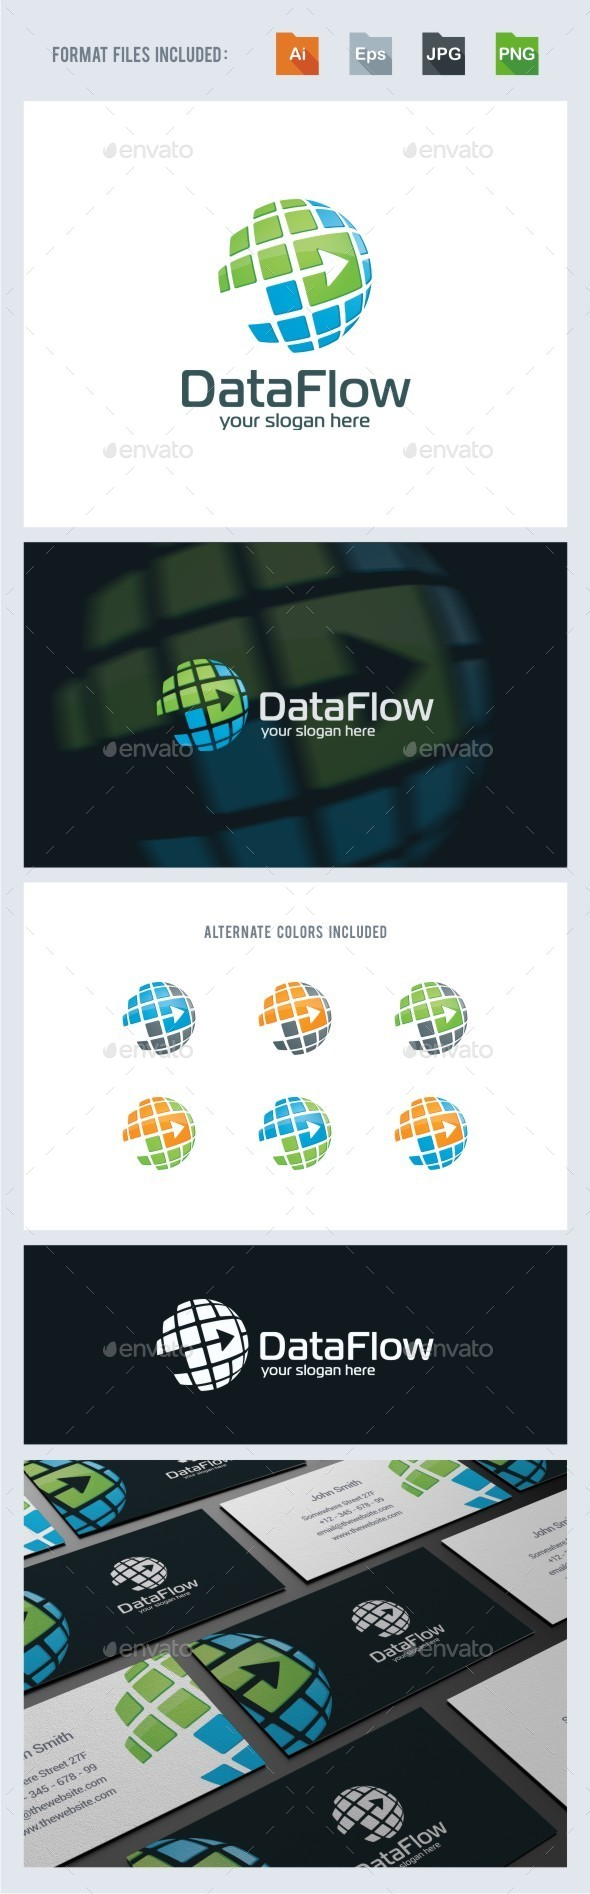 Data Flow - Logo Template - Symbols Logo Templates